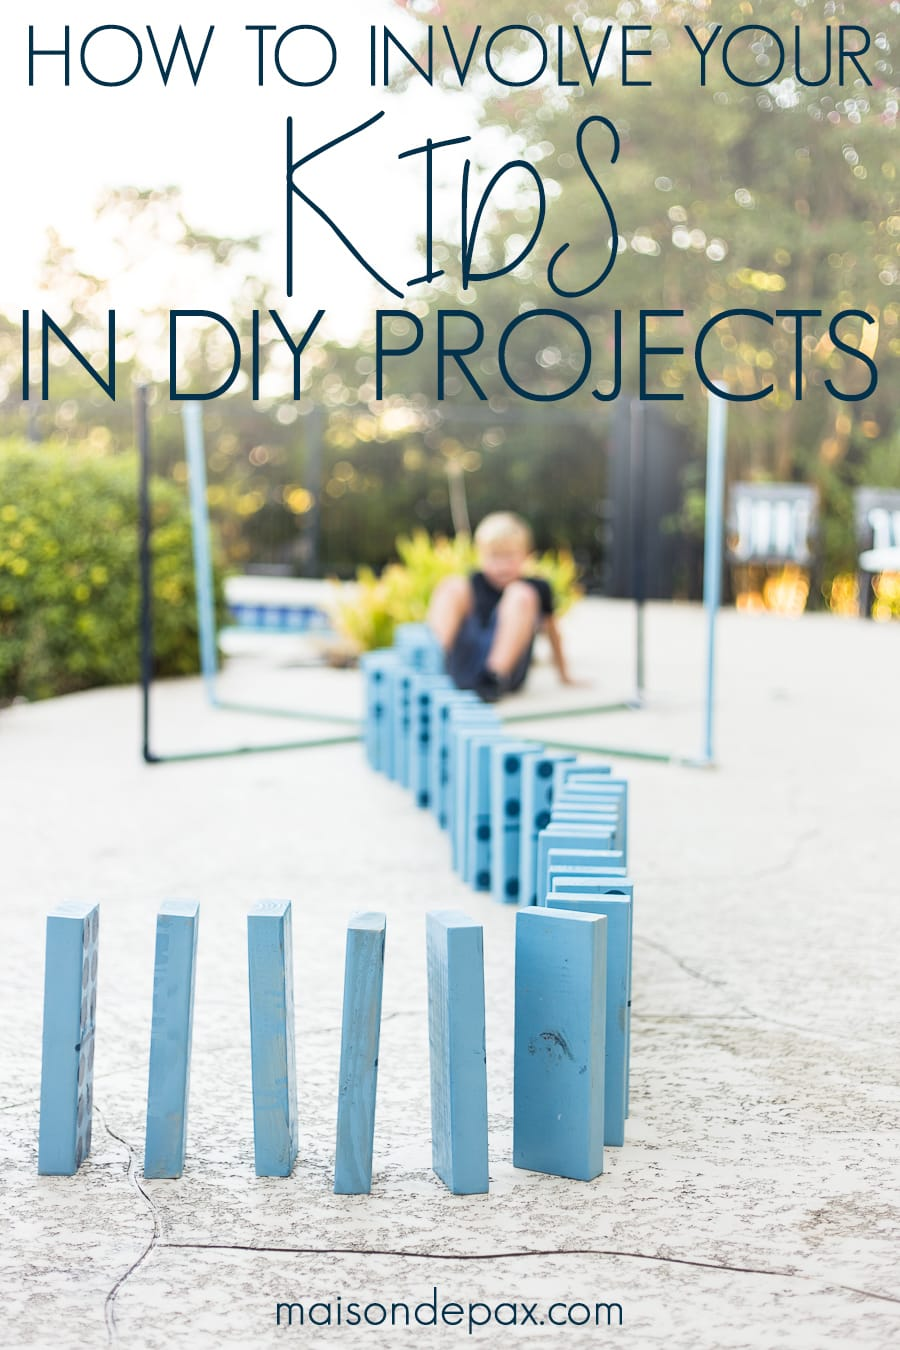 Tips for completing DIY projects with kids PLUS find out how to make these giant outdoor yard games! #familyfun #familyproject #outdoorgames #kidfriendlyproject #diyproject